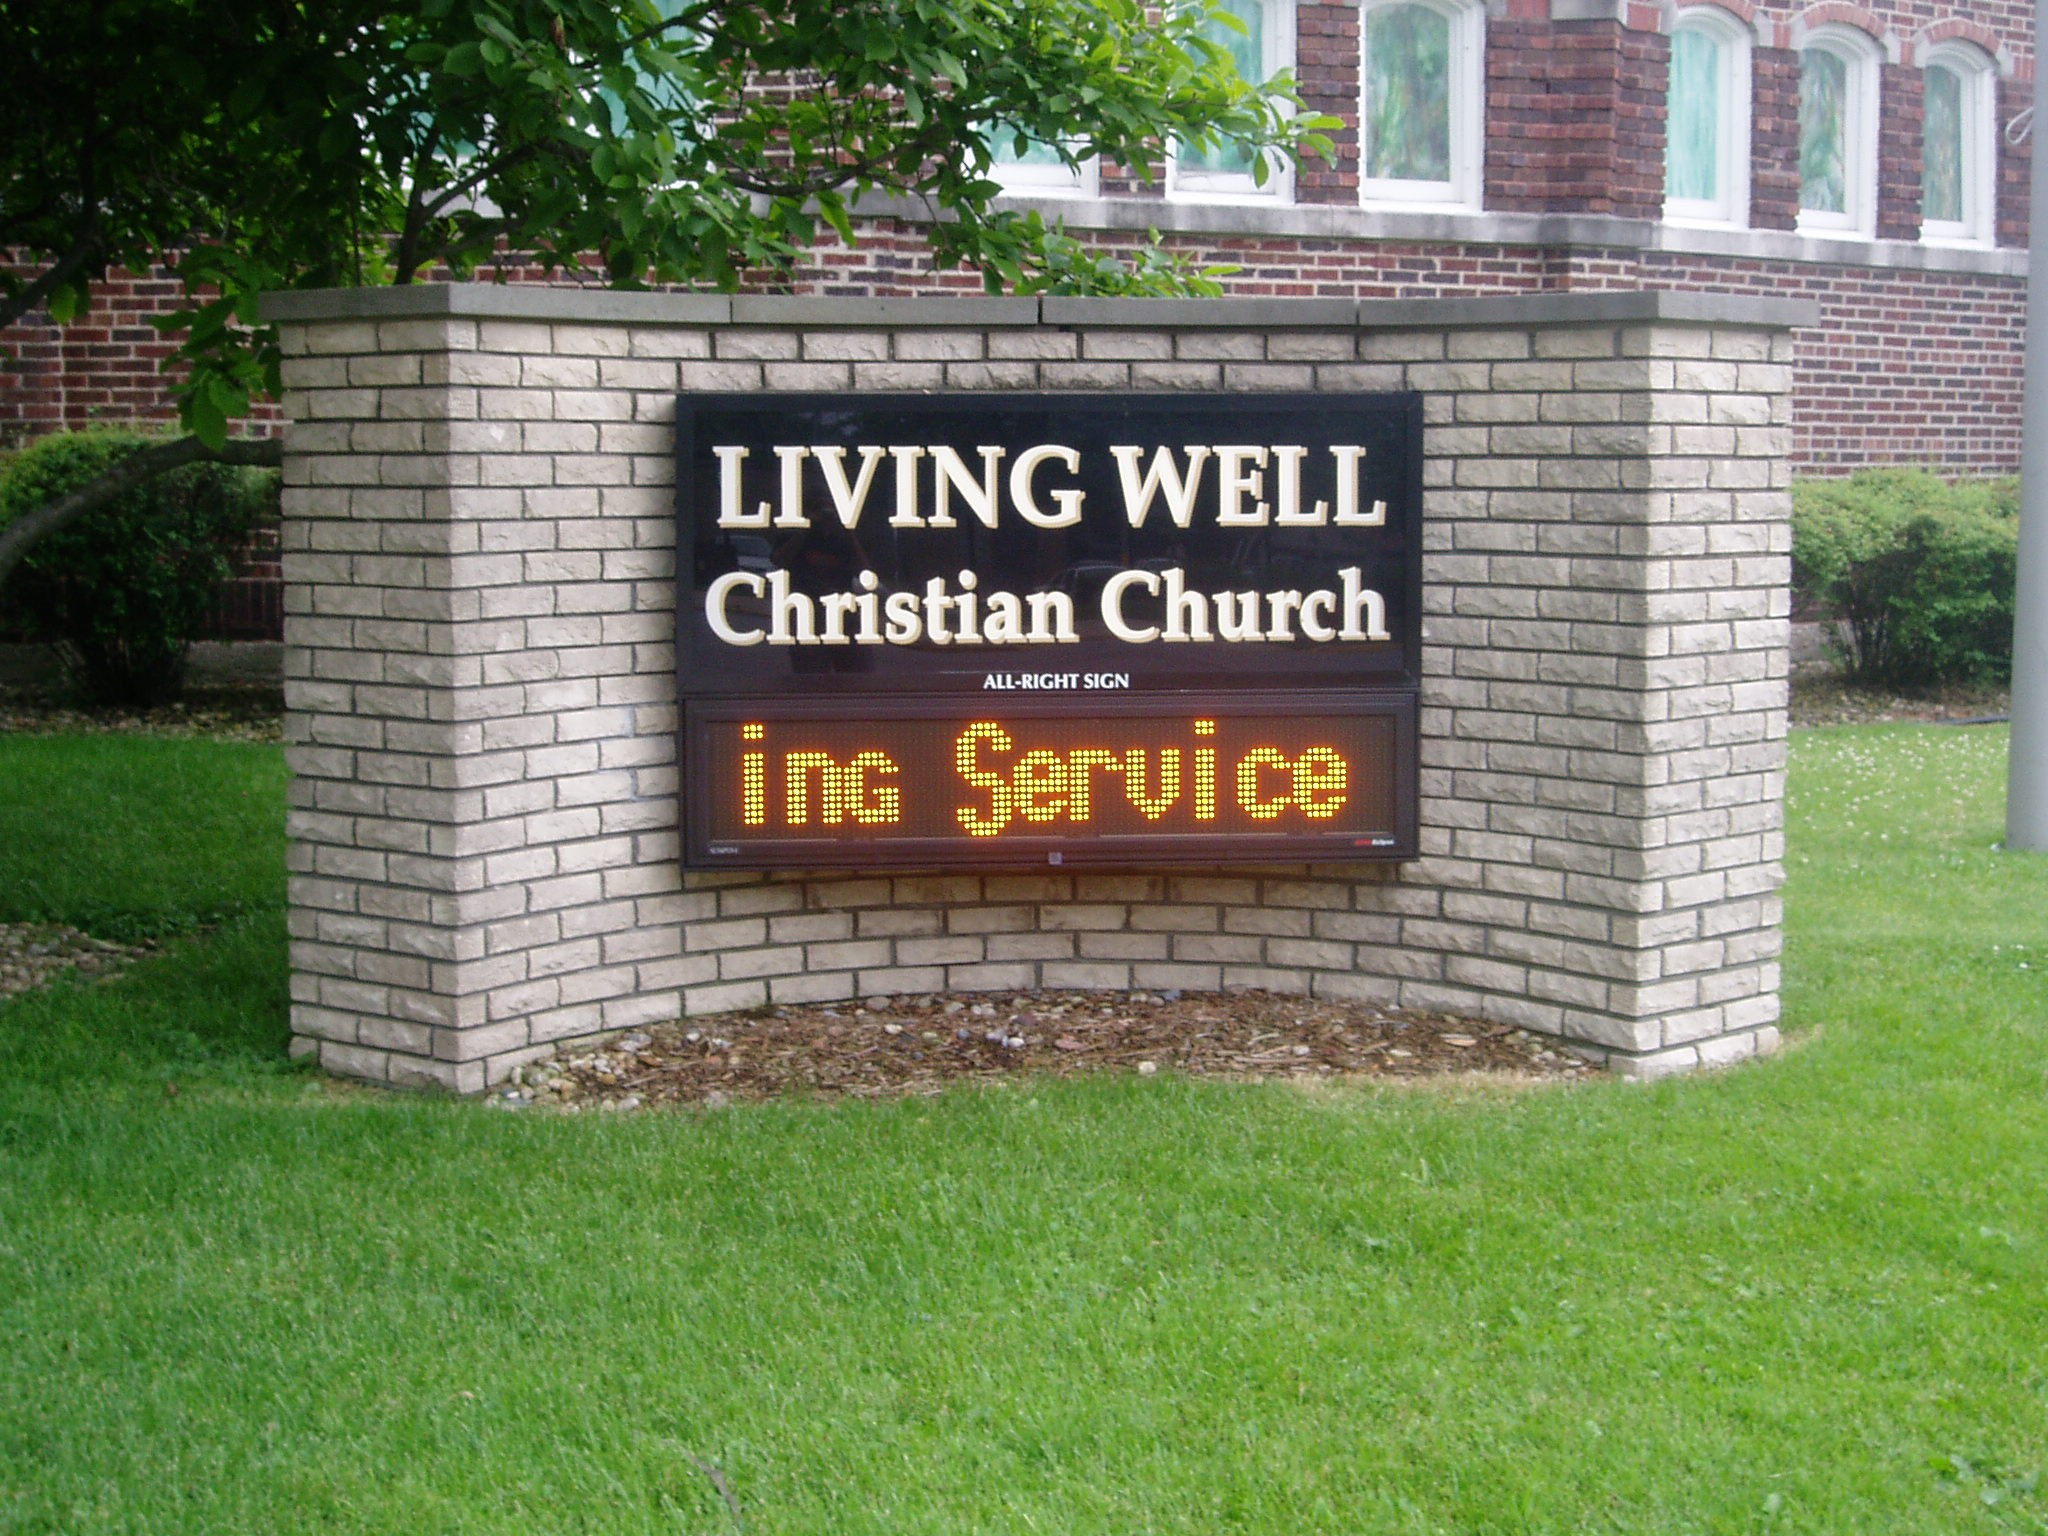 A monument, digital sign in a grassy area outside of a church, representing how one can benefit from calling a Merrillville digital sign company.